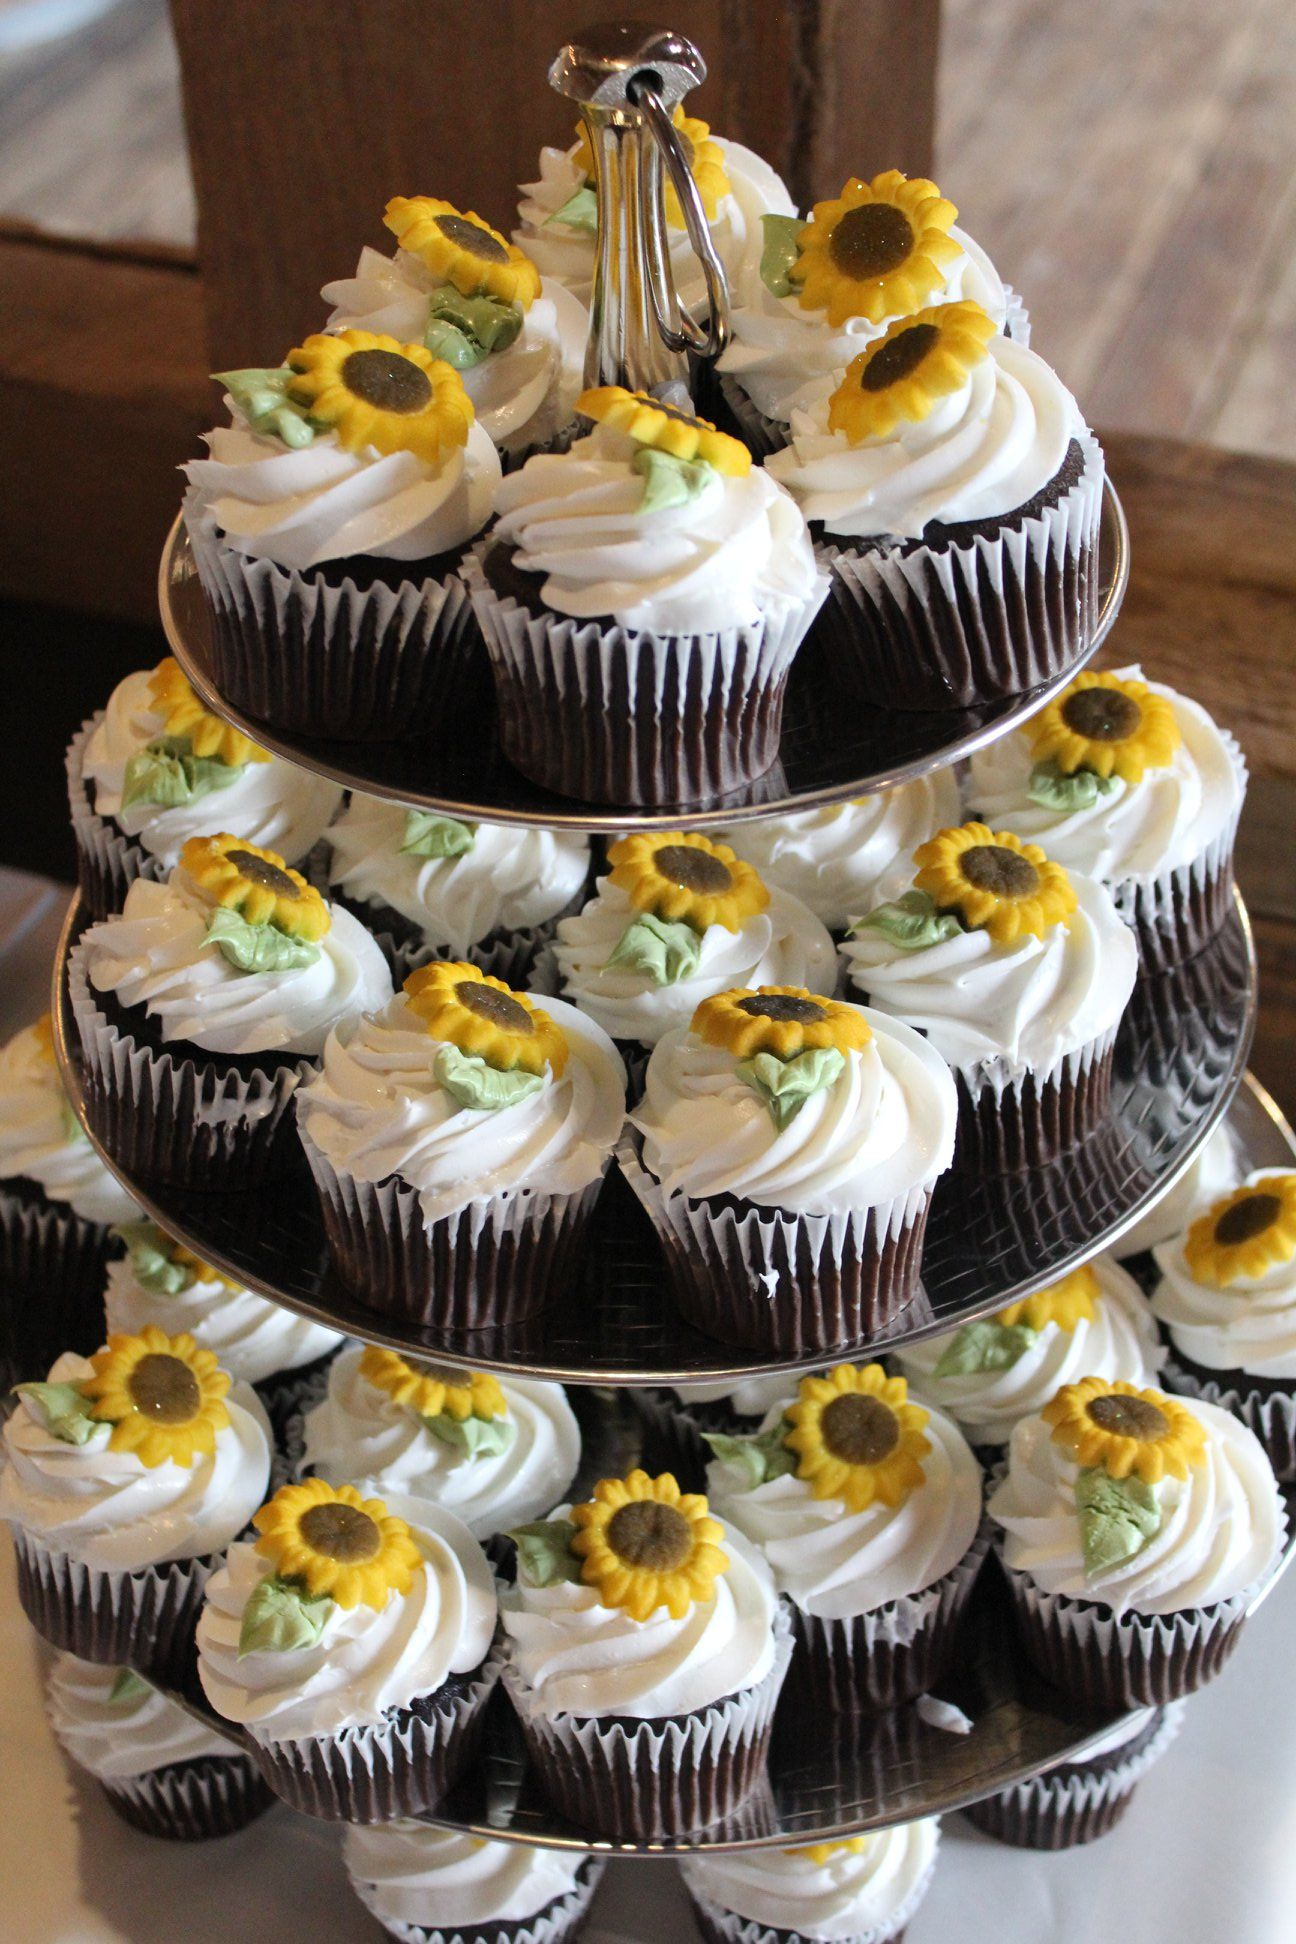 DIY Barn Wedding with Sunflowers • Binkies and Briefcases #sunflowercupcakes